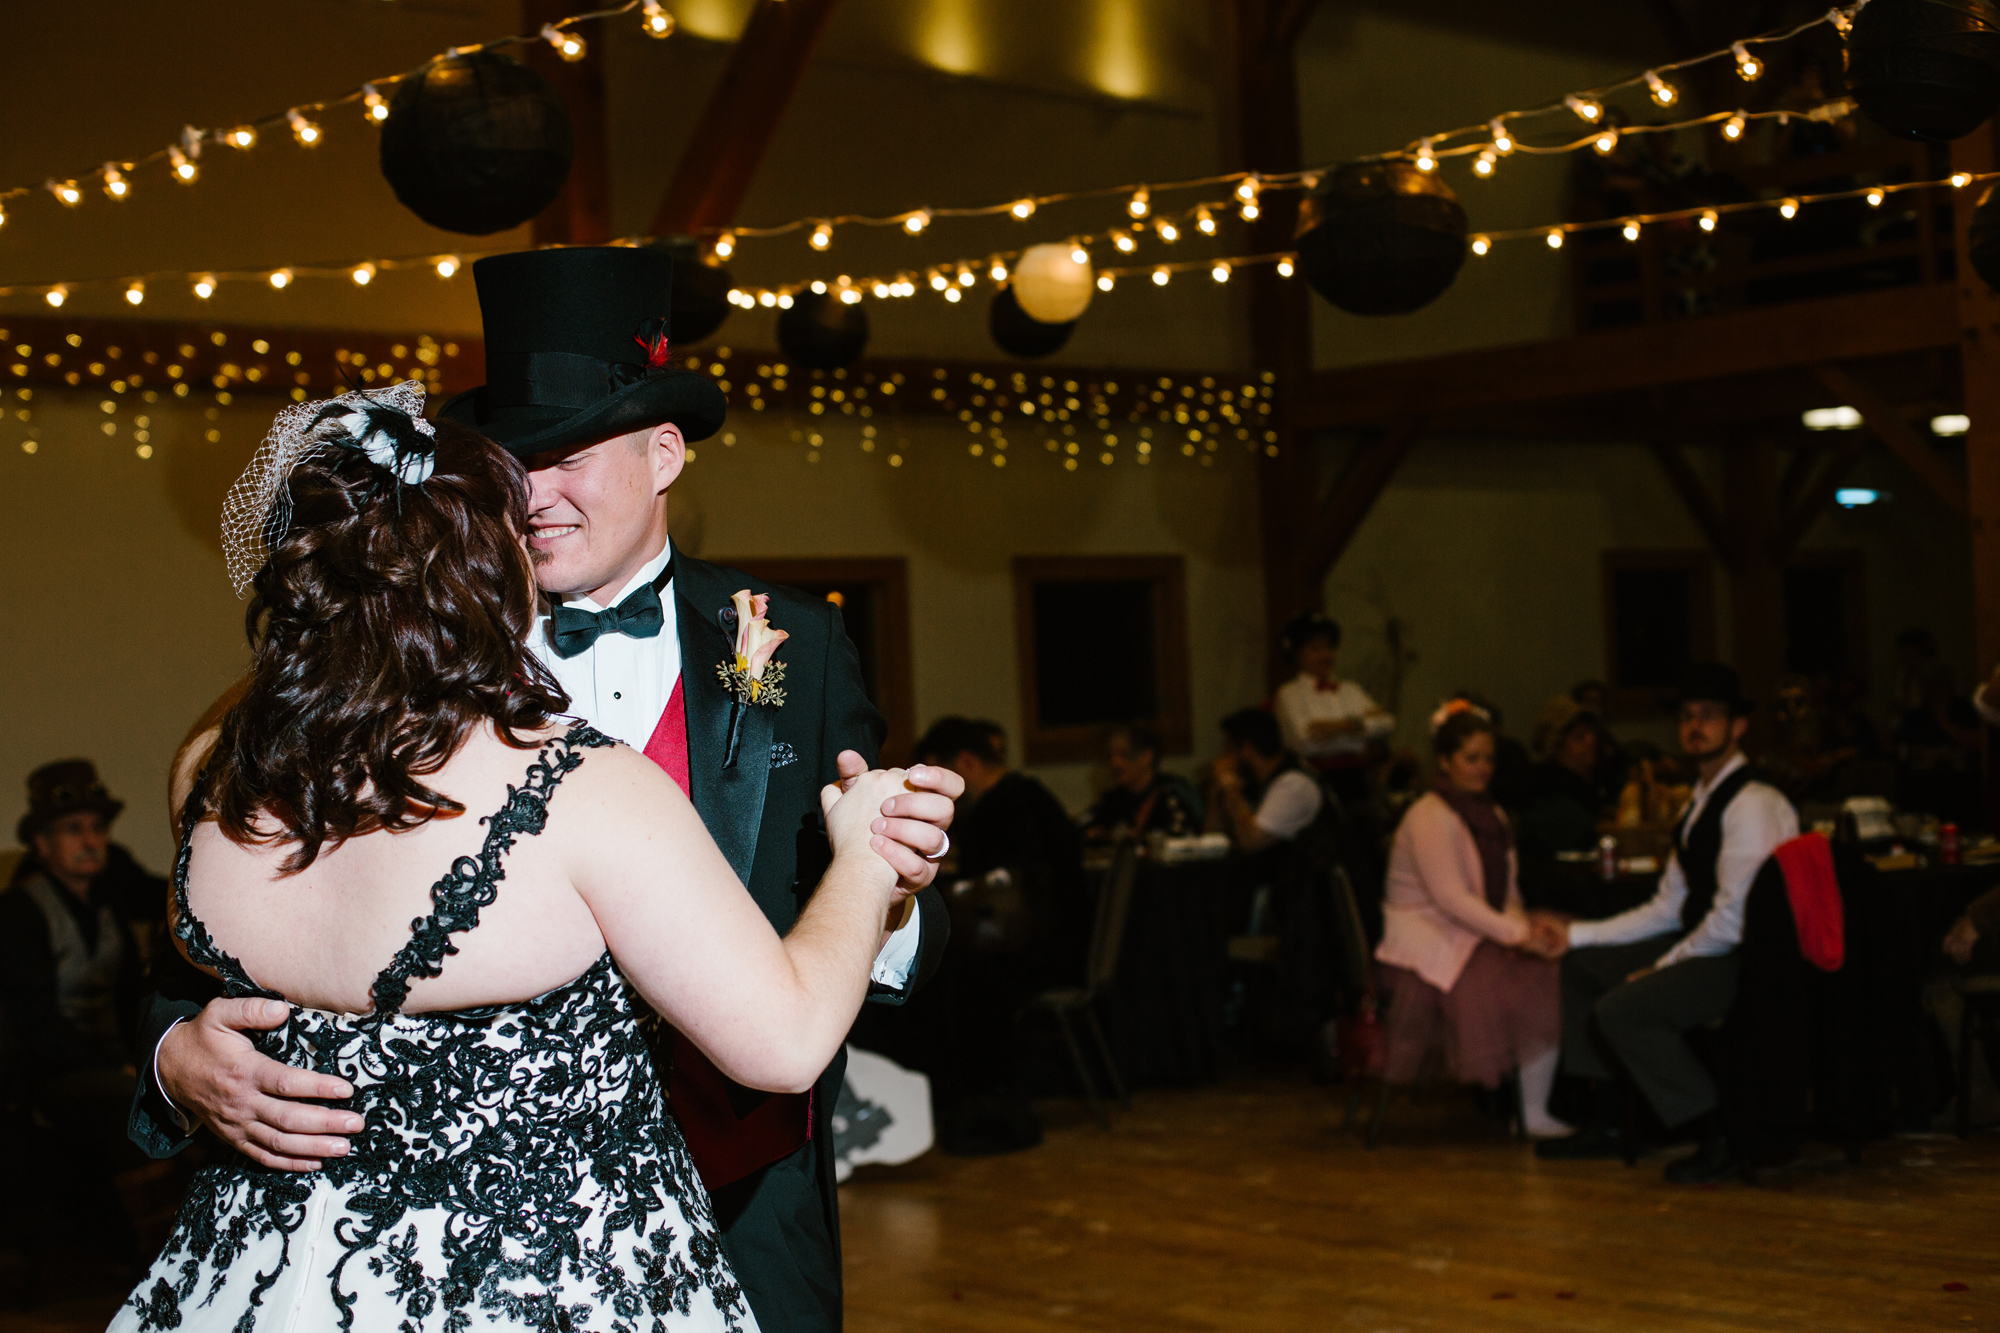 ann-arbor-michigan-halloween-themed-wedding-dancing-photos (18).jpg